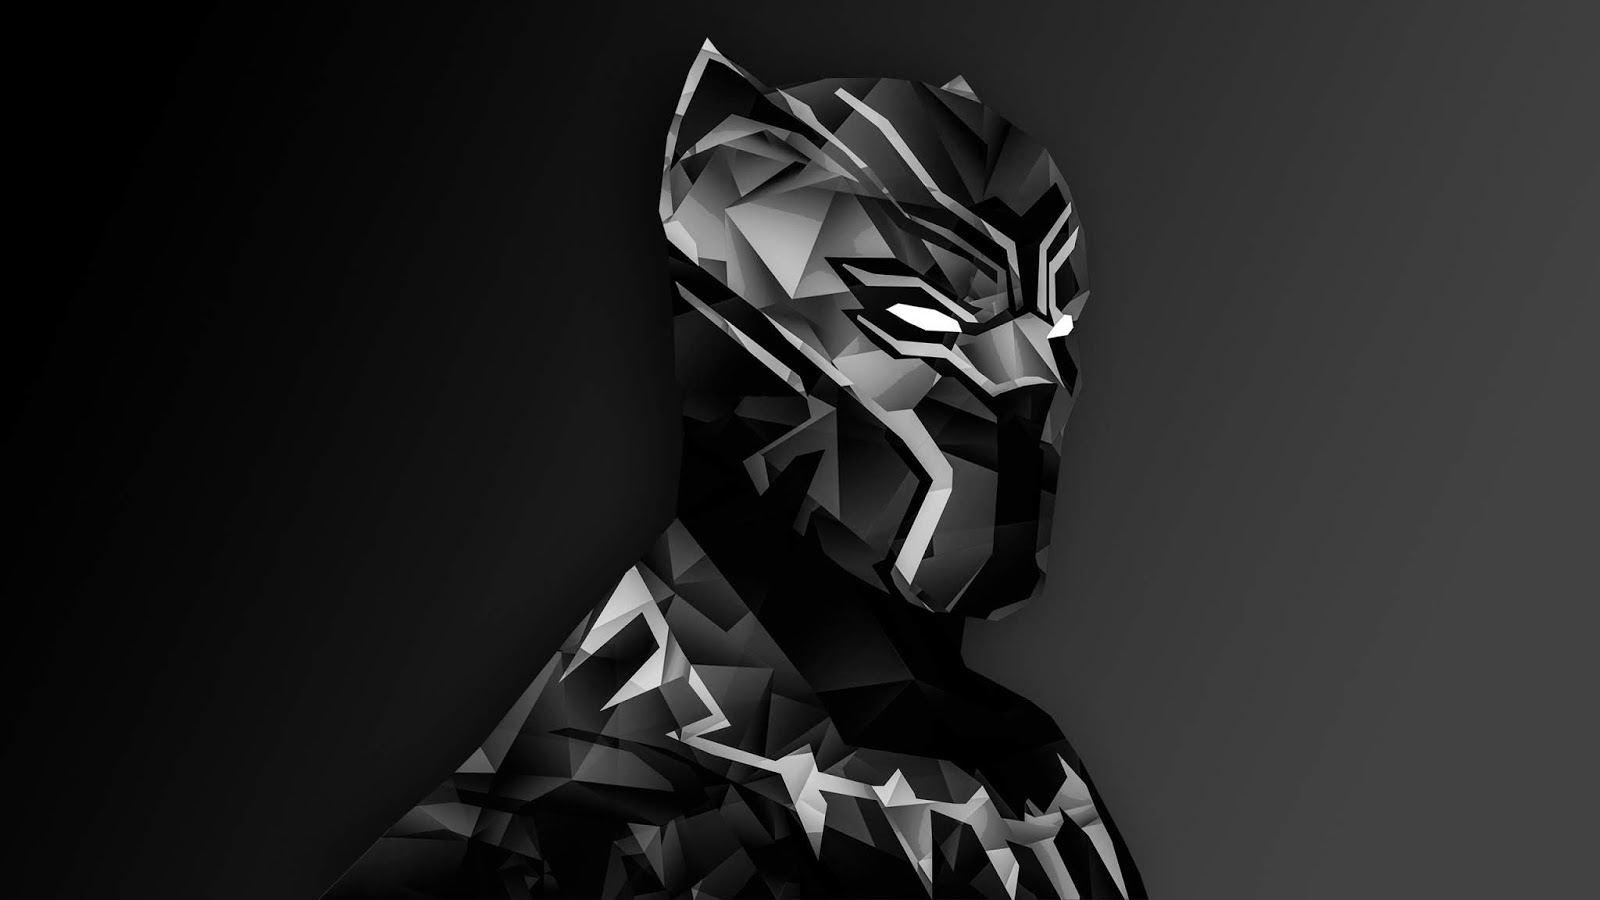 Black panther wallpapers from avengers in hd 4k